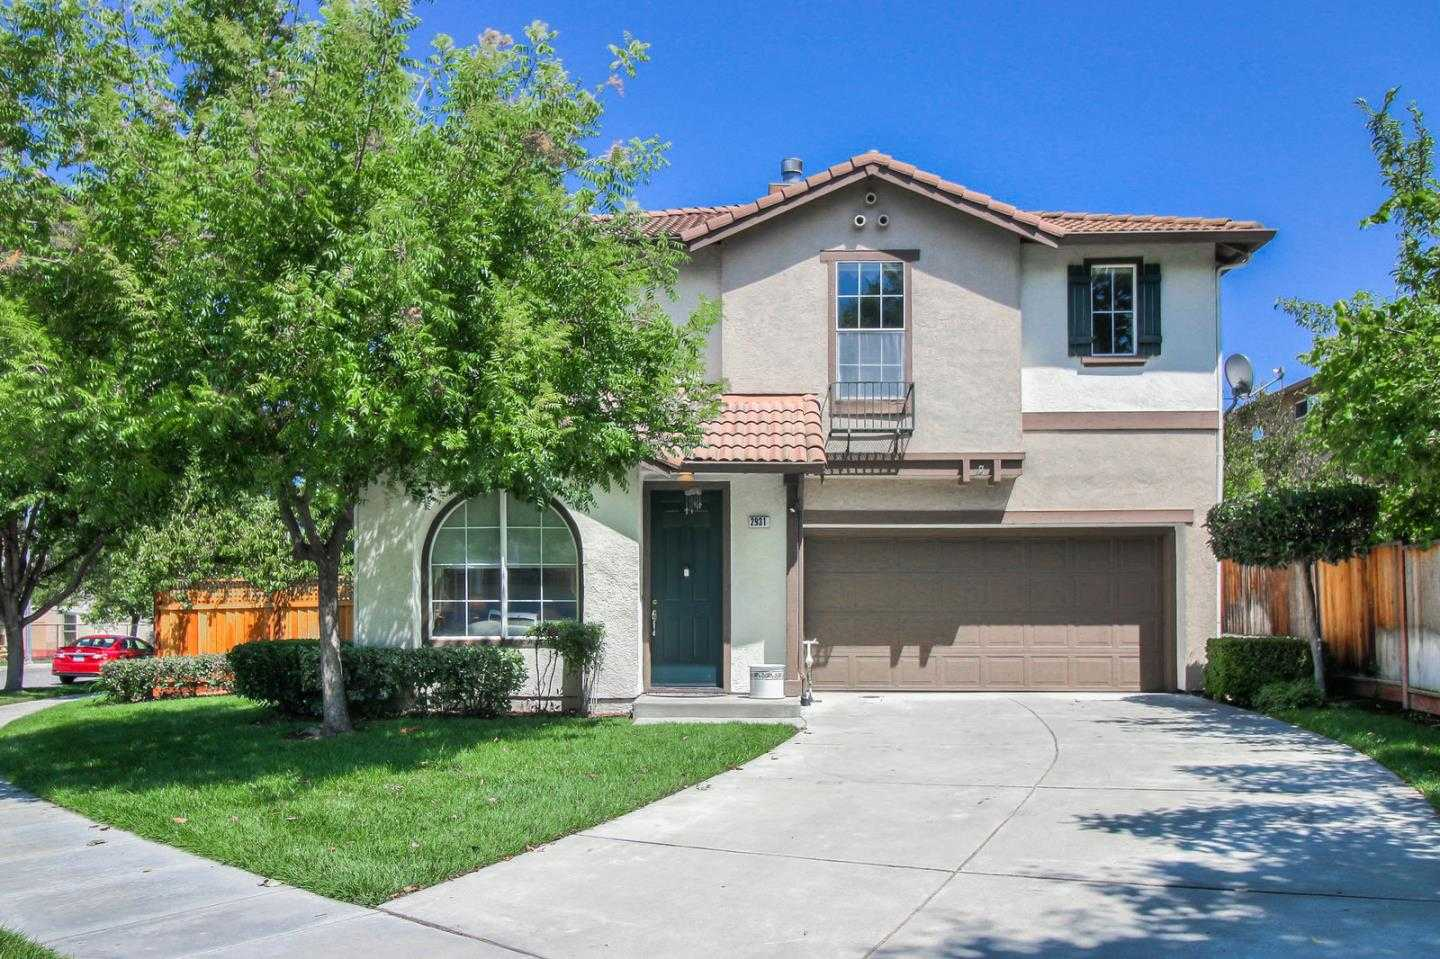 $1,399,750 - 5Br/3Ba -  for Sale in San Jose